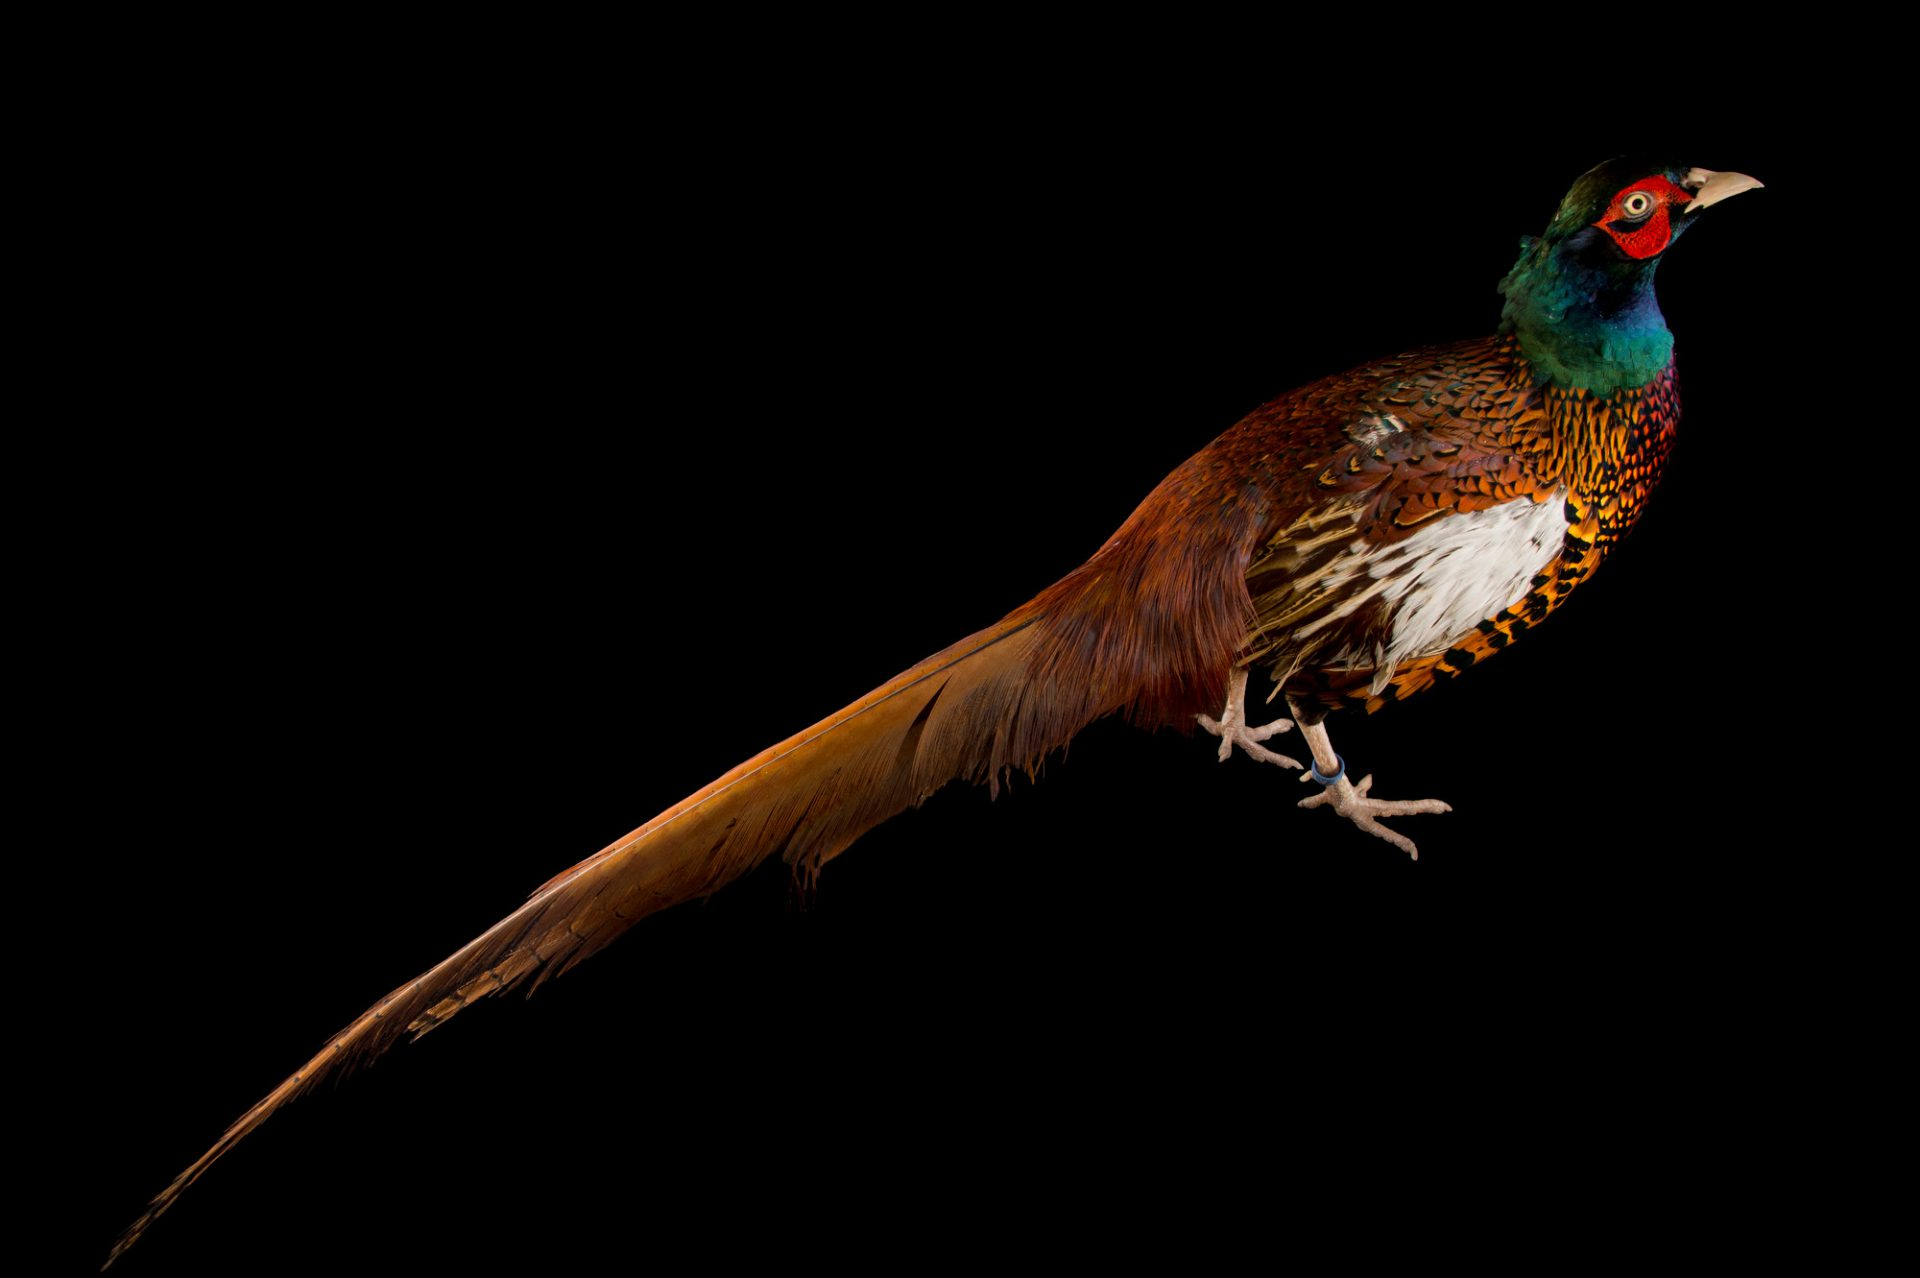 Photo: A male Bianchi's pheasant (Phasianus colchicus bianchi) at the Plzen Zoo.